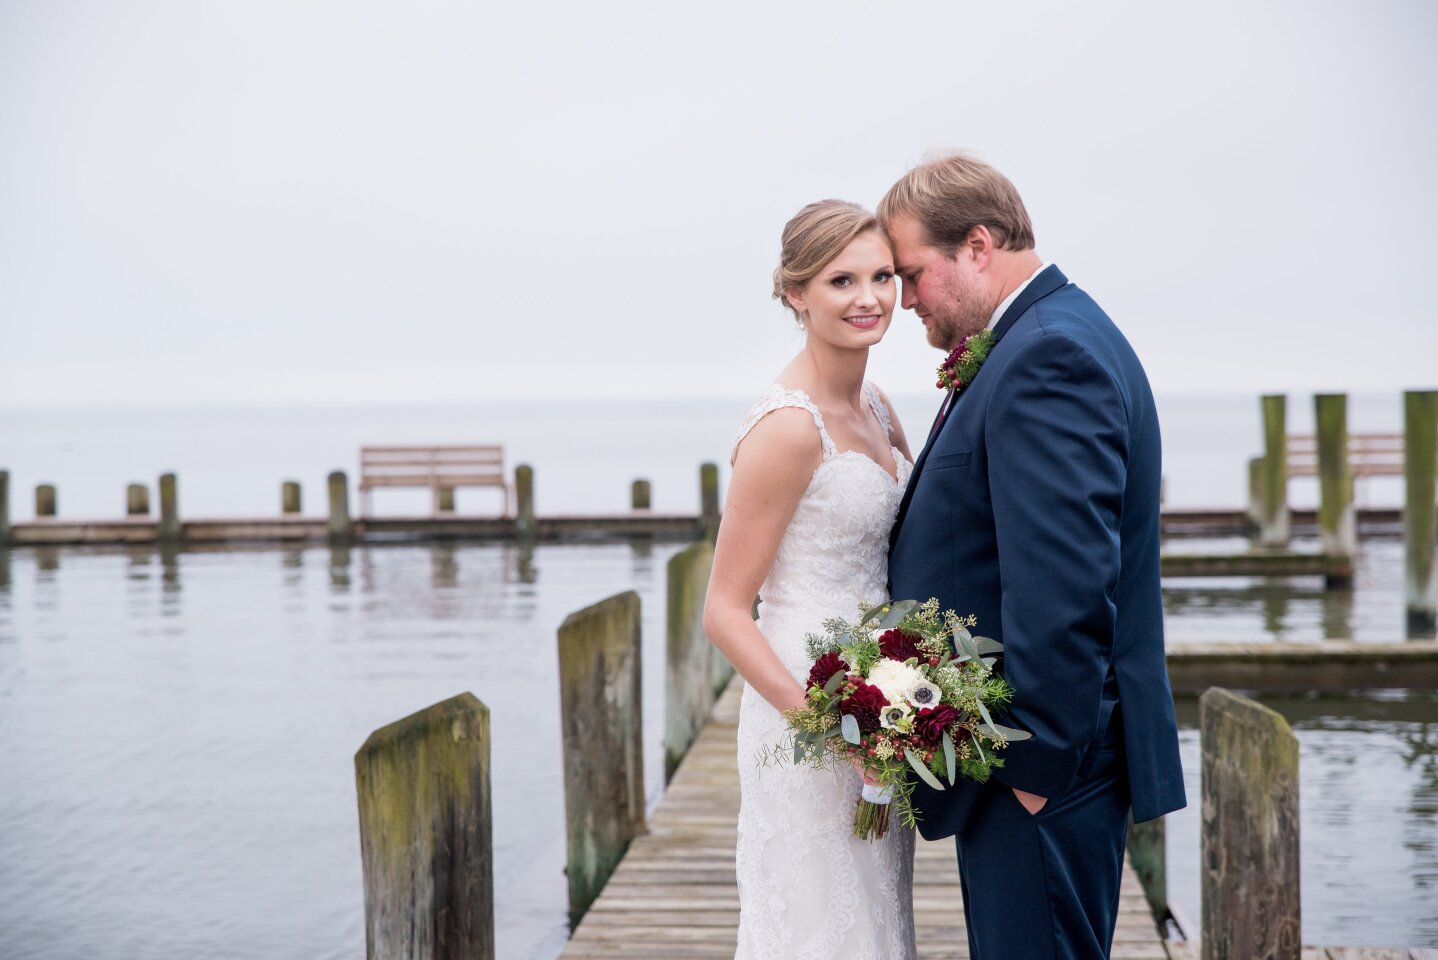 Taylor wedding at Captain's Cove Golf & Yacht Club